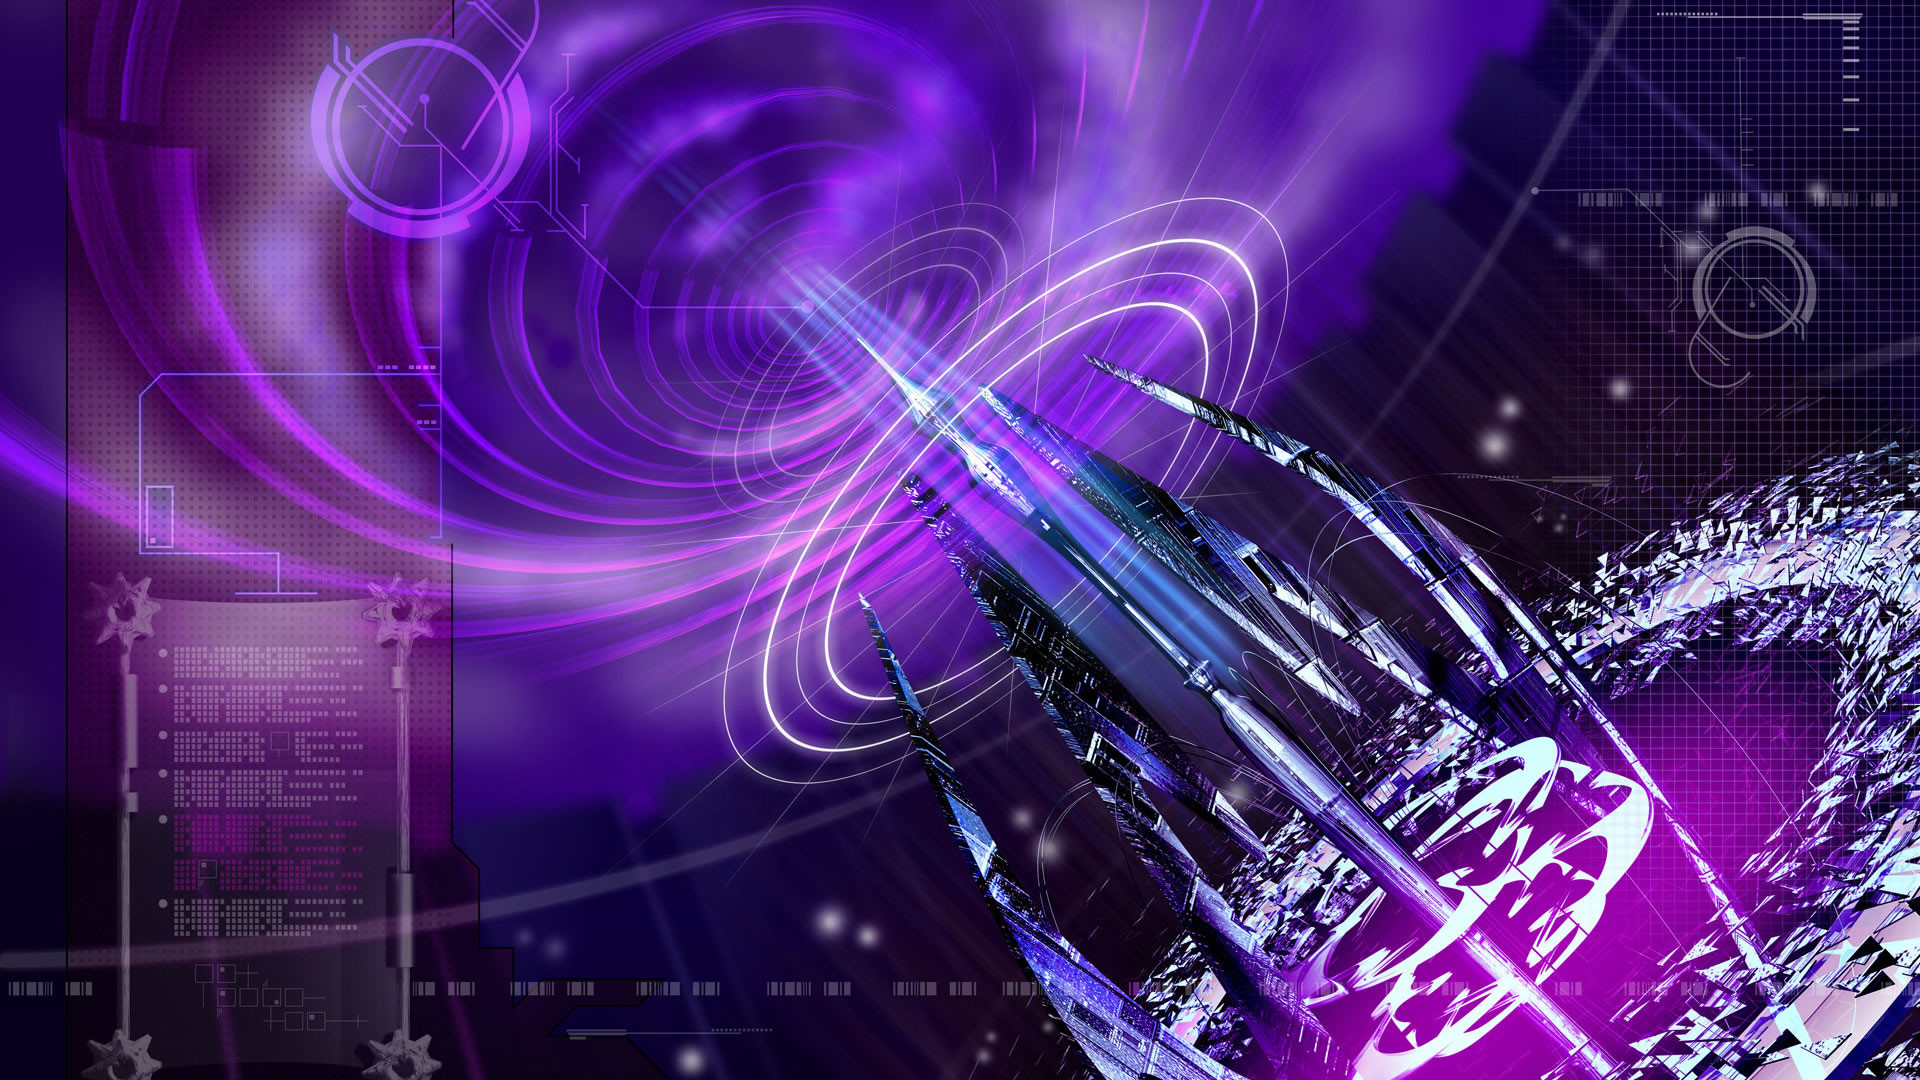 Purple Abstract Backgrounds 63 Images